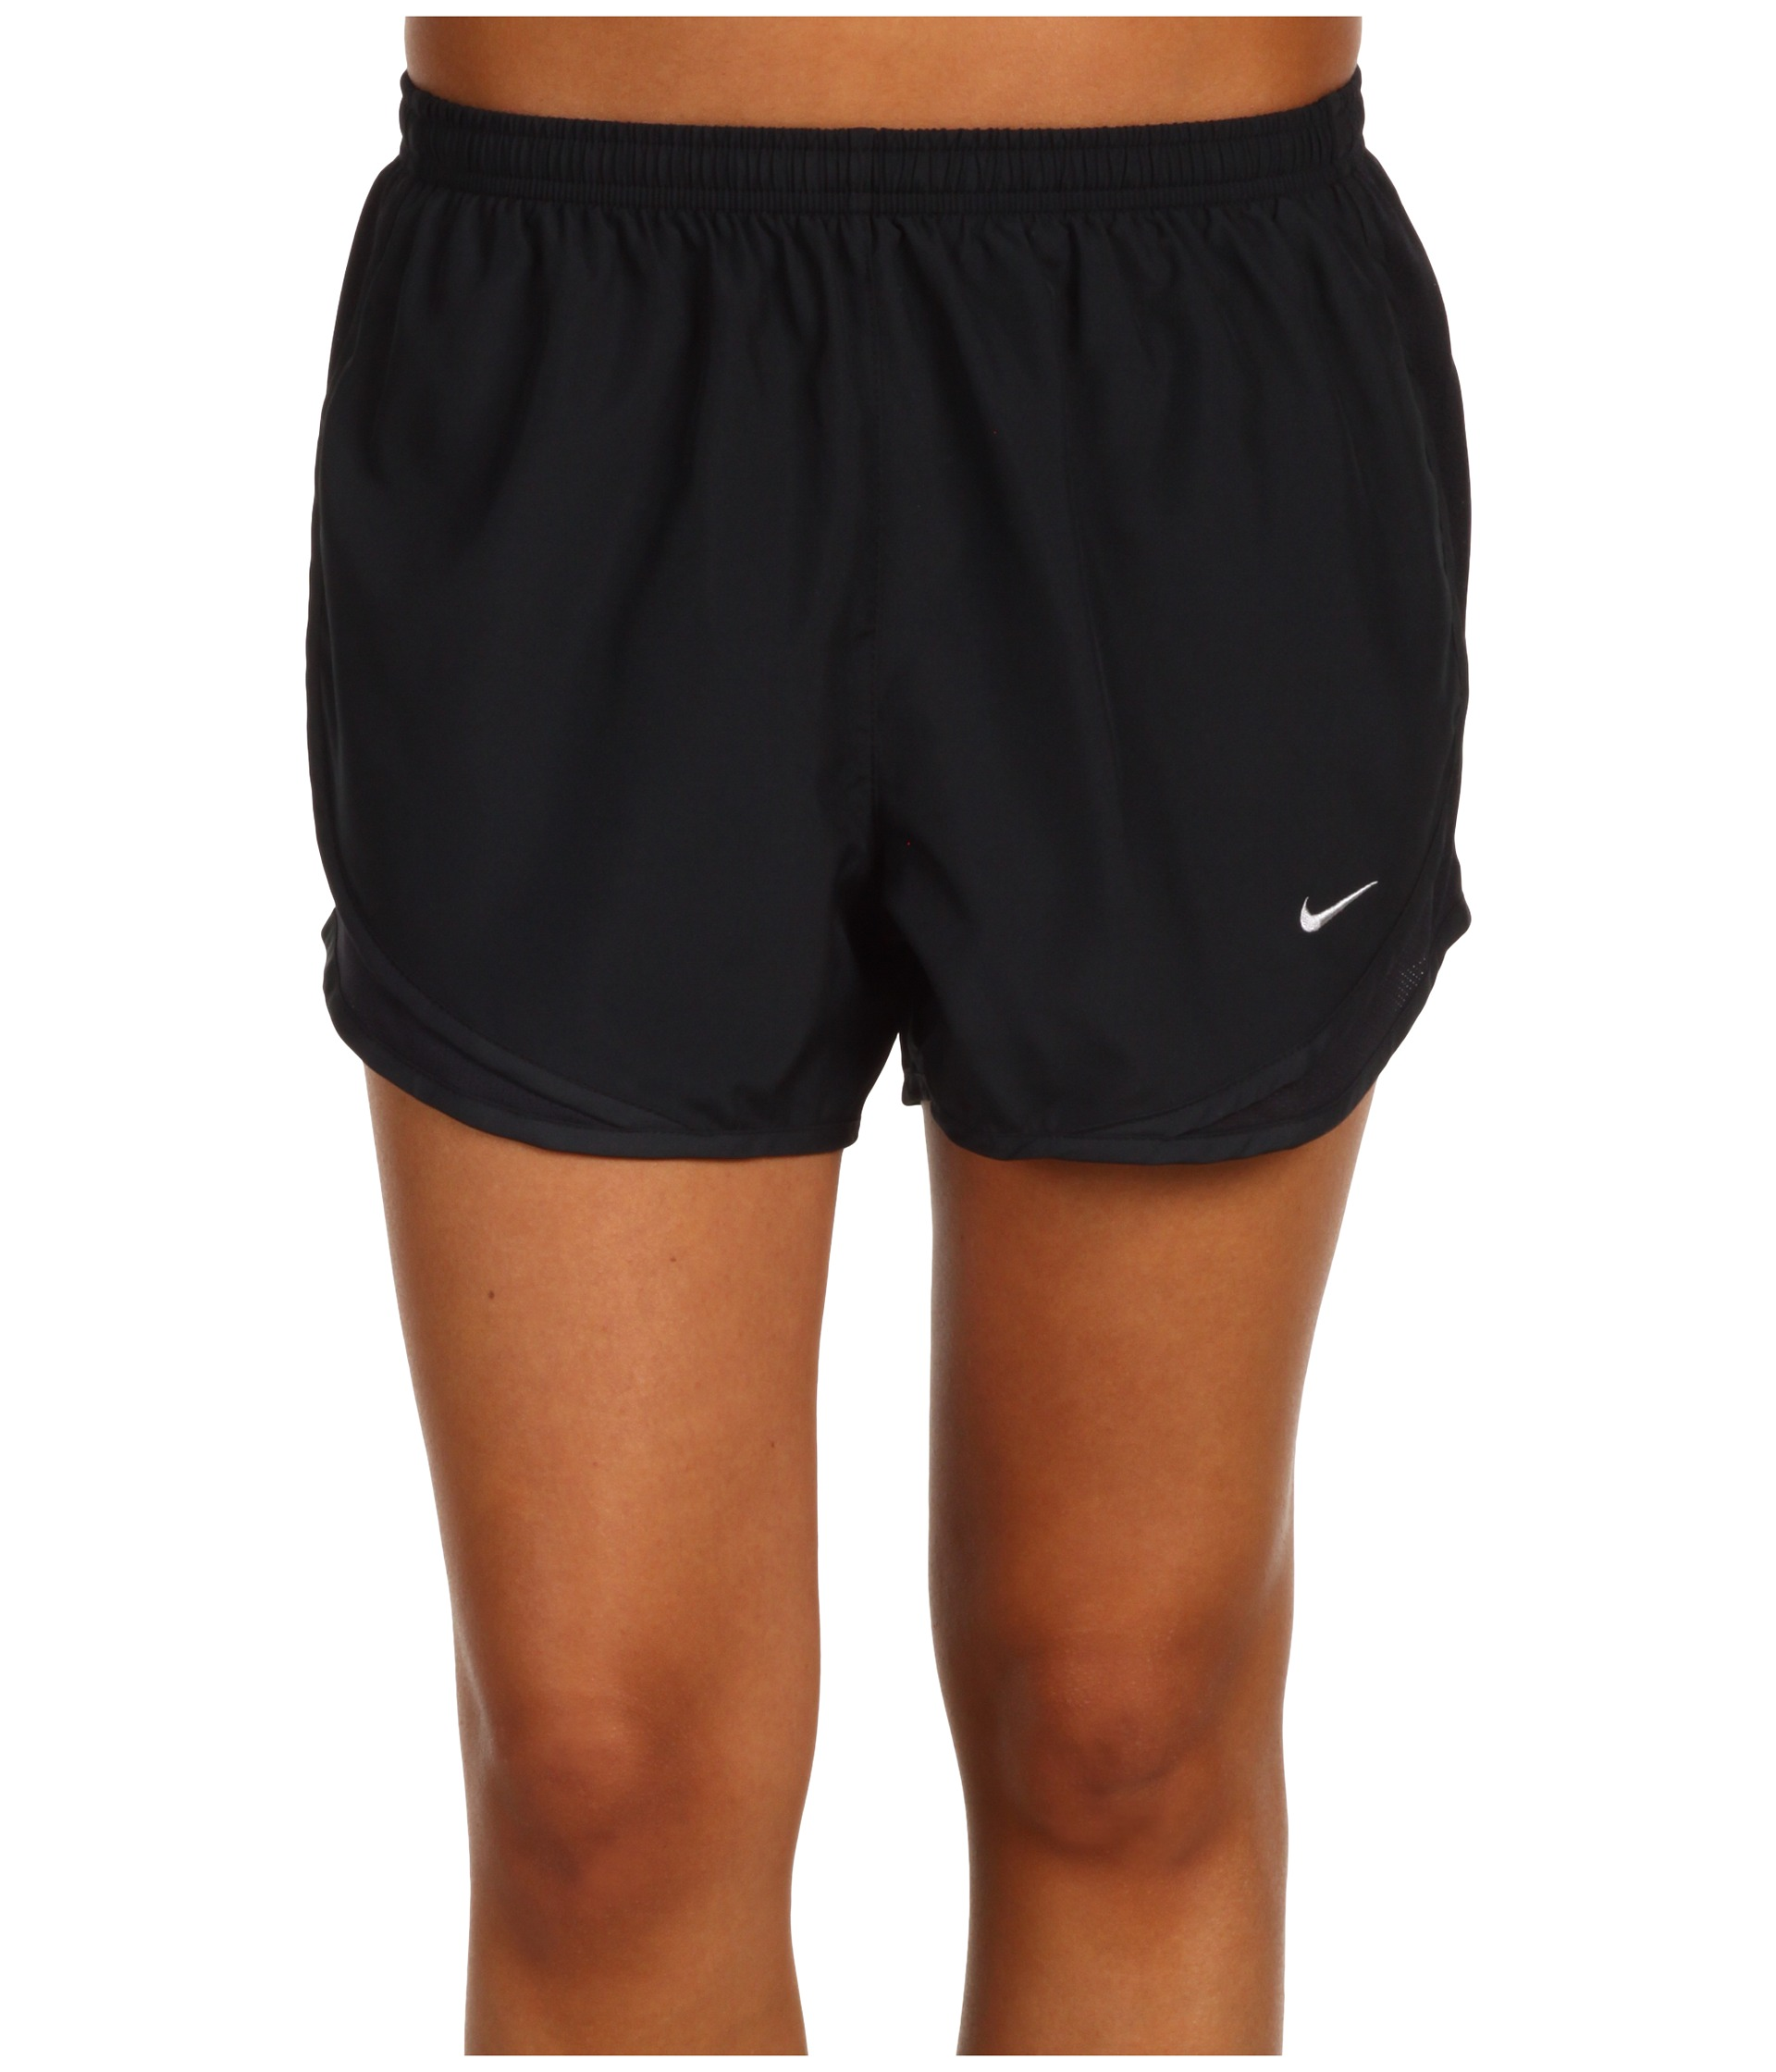 Nike womens running shorts with liner - Nike Womens Running Shorts With Liner 66